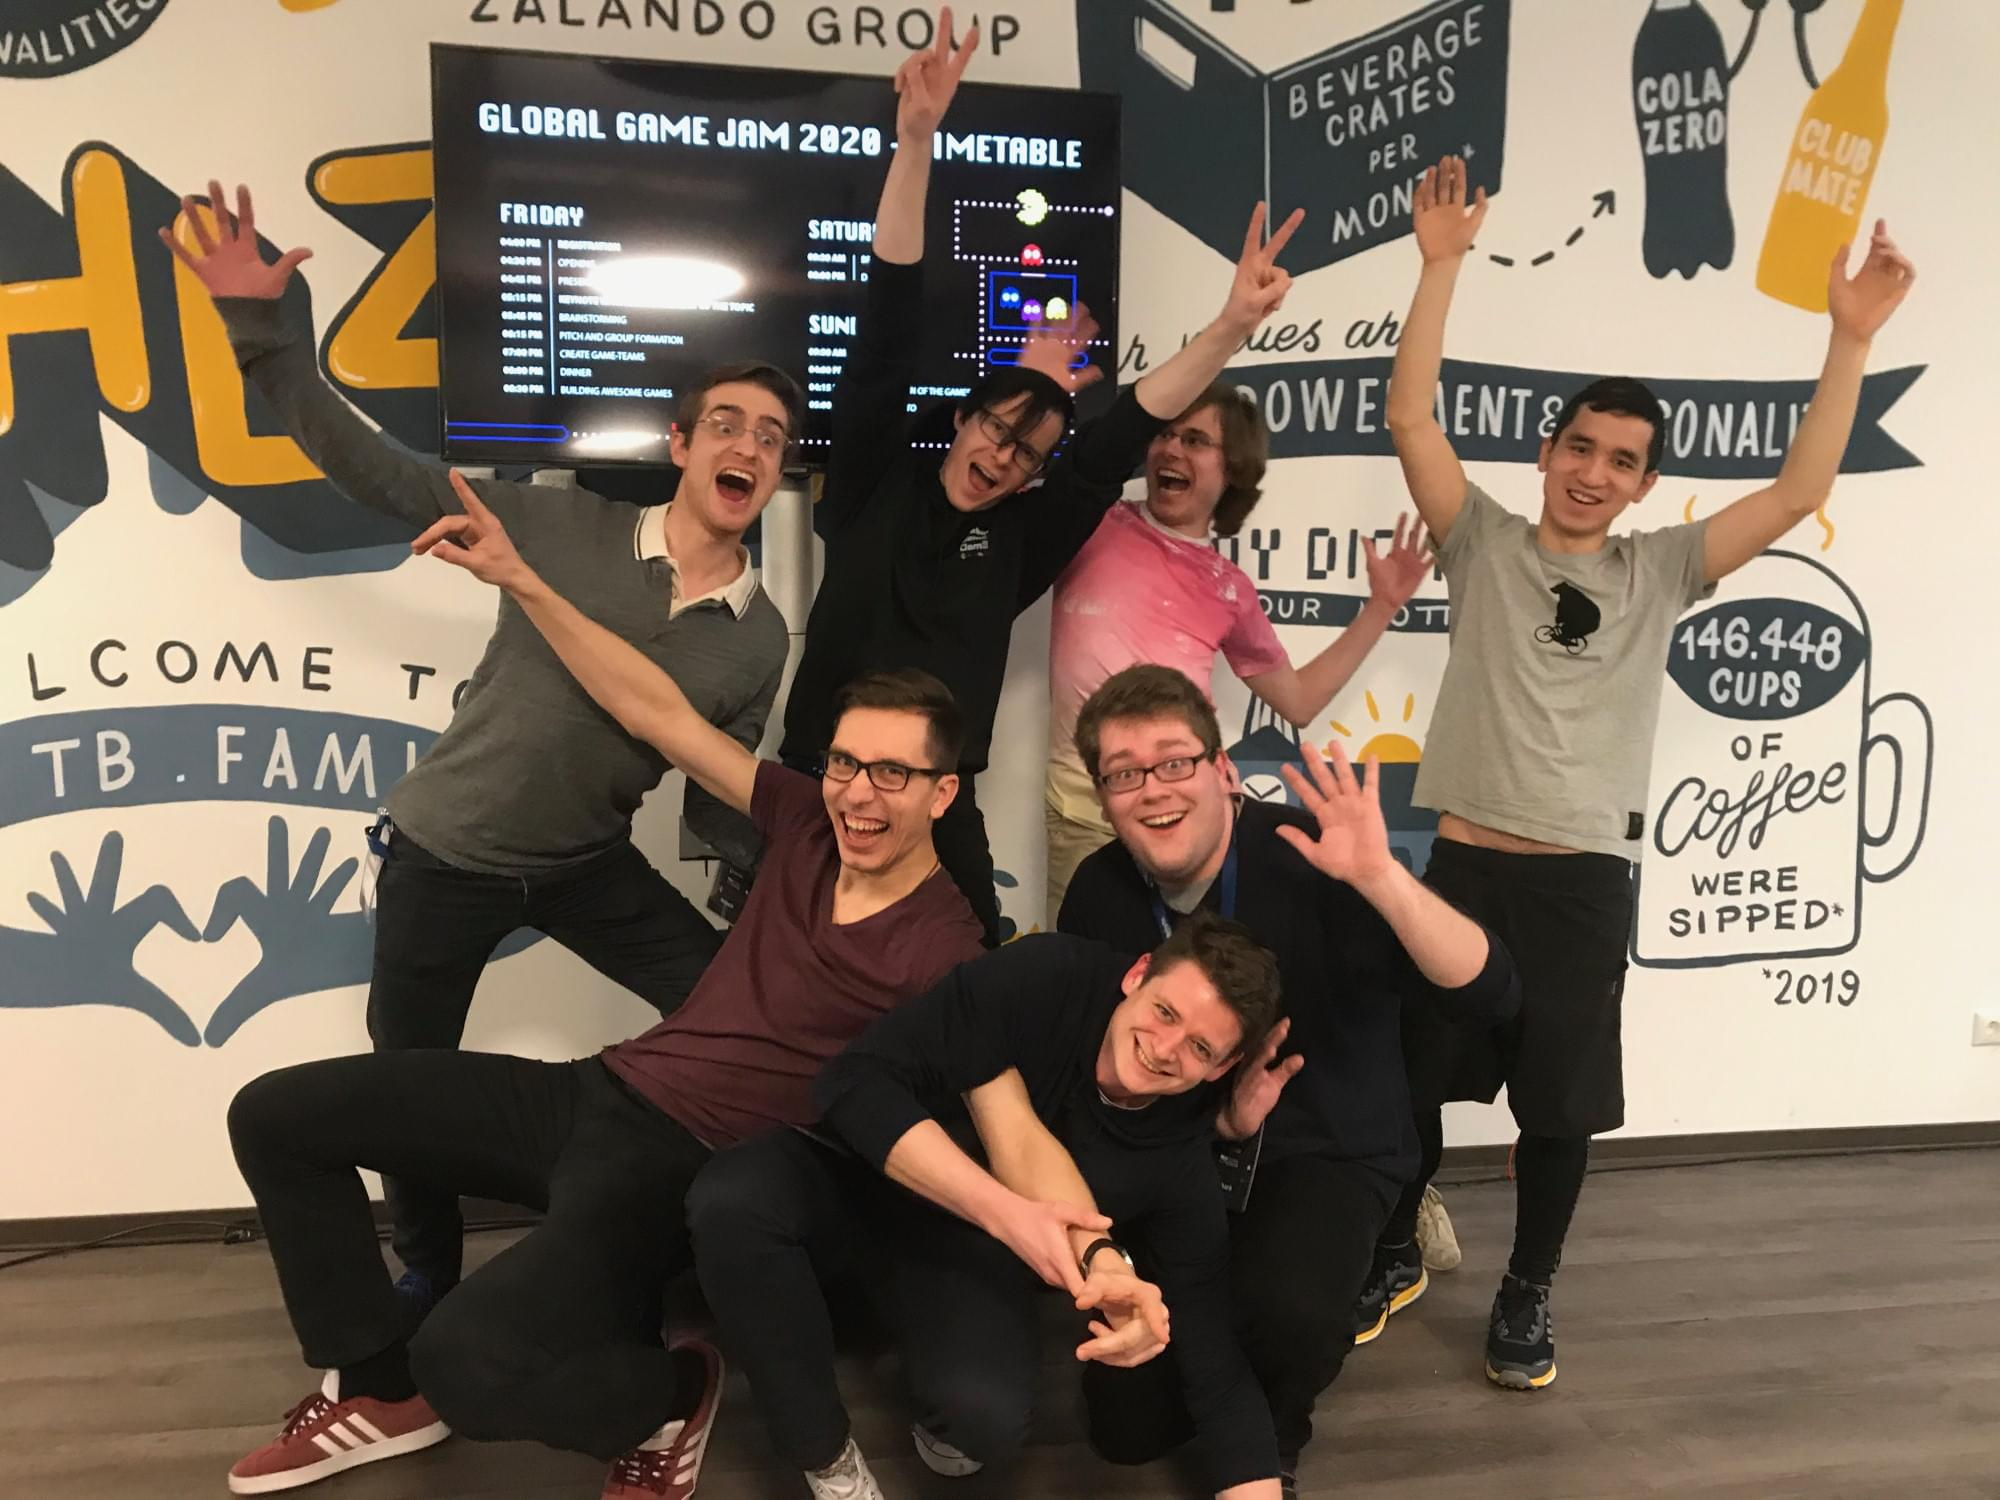 Gruppenfoto des Teams 'Quick and Dirty' beim Global Game Jam 2020 in Ansbach.